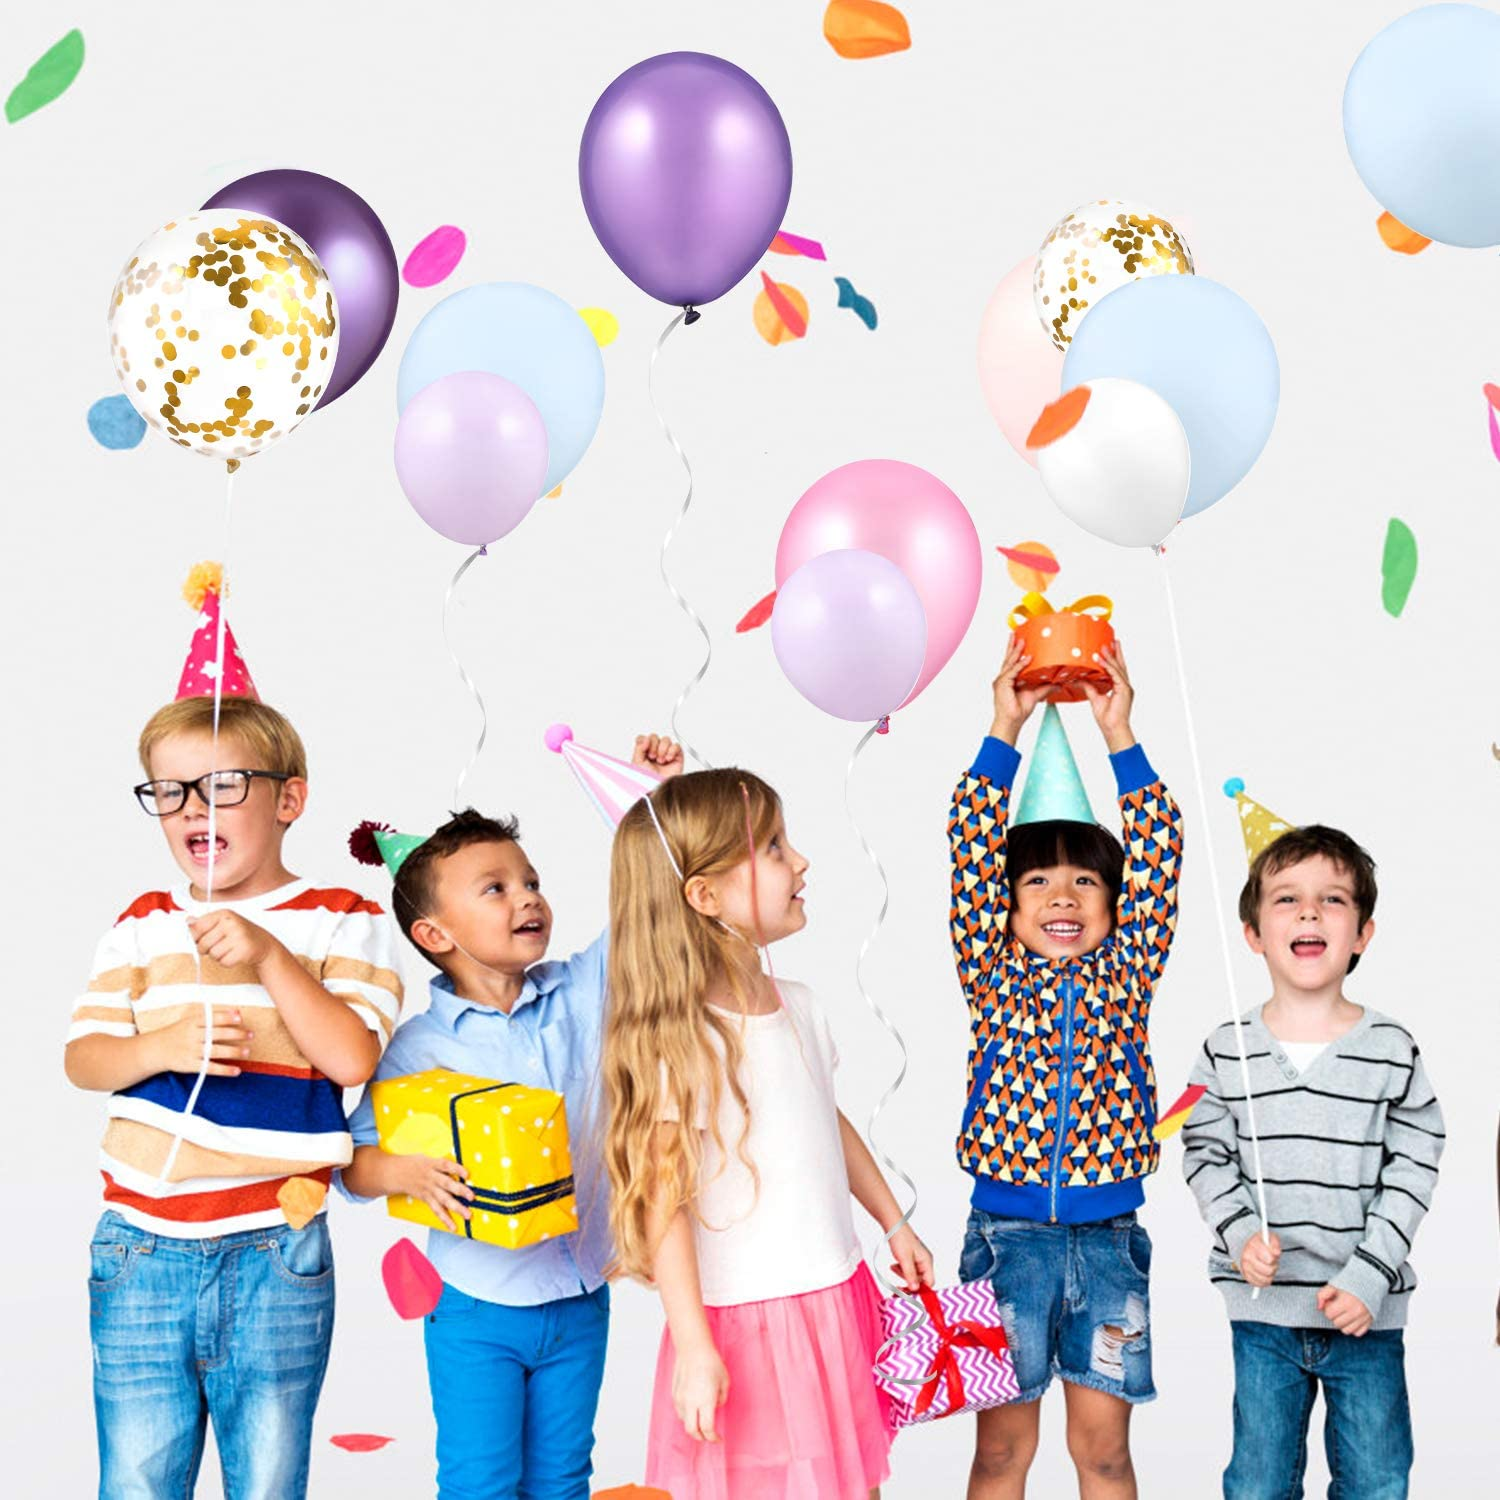 Confetti Balloons Latex Balloons Color Assorted for Baby Shower Birthday Party Decoration GAGAKU 168 Pcs Balloons Garland Arch Kits for Unicorn Mermaid Party